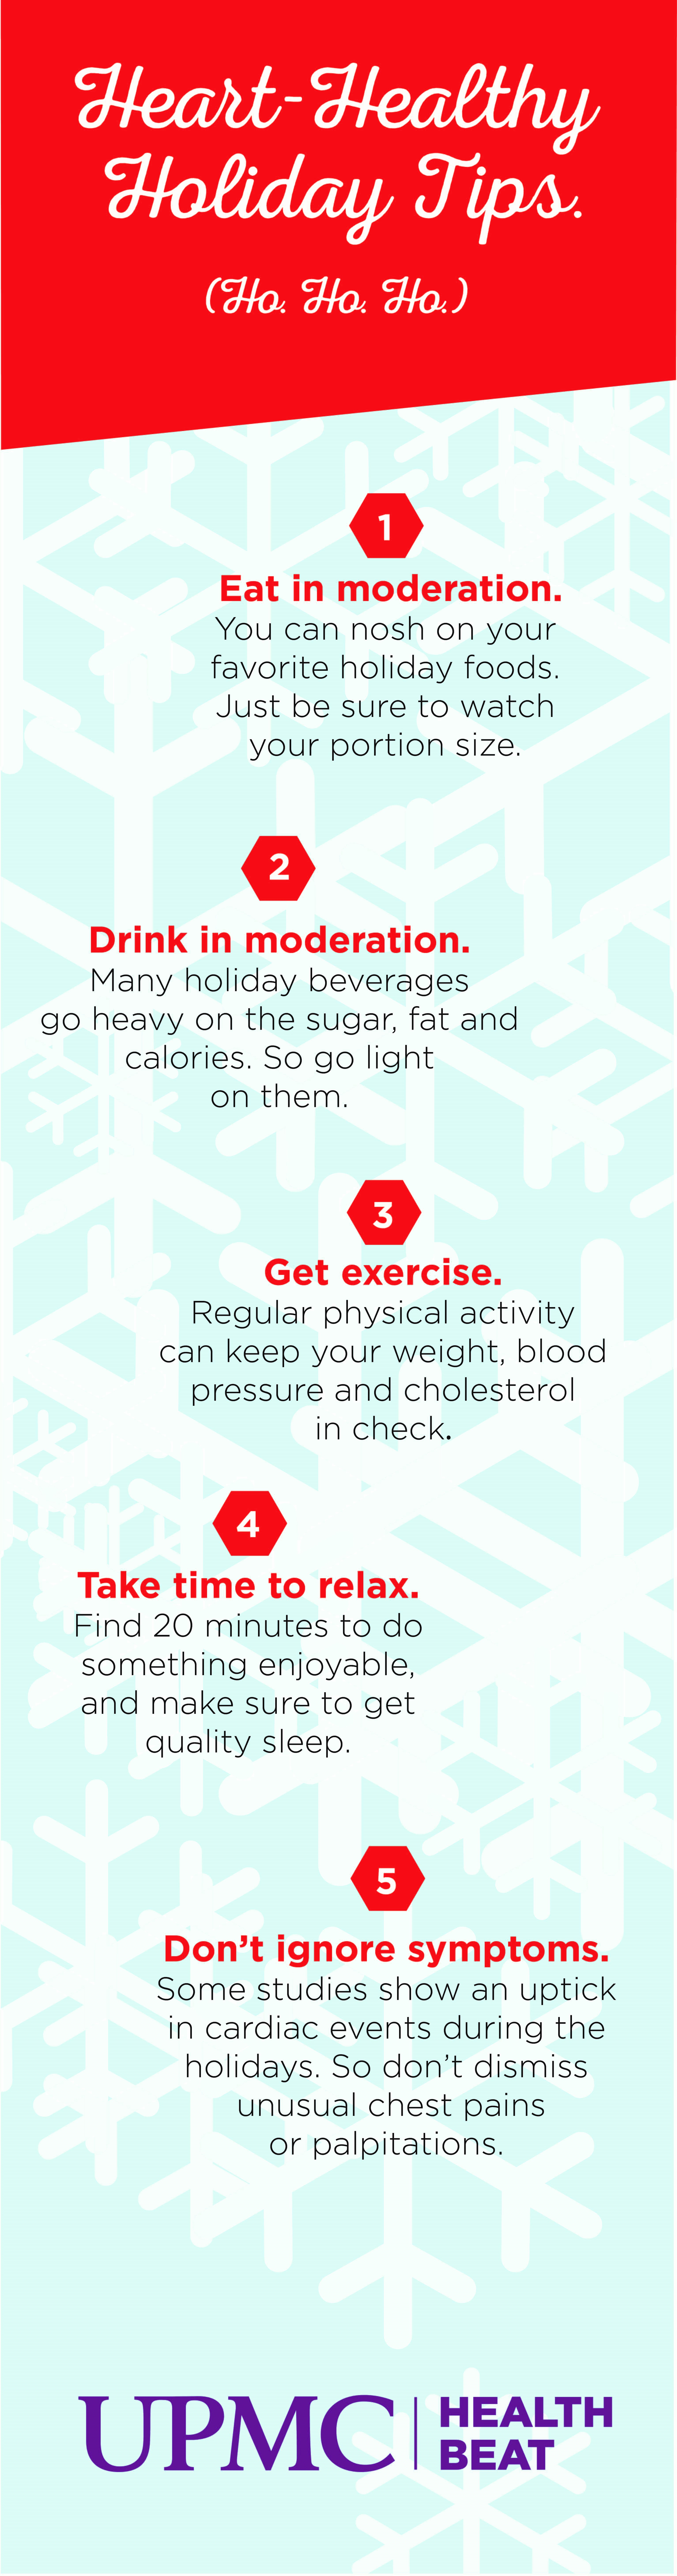 Find tips for a heart healthy thanksgiving